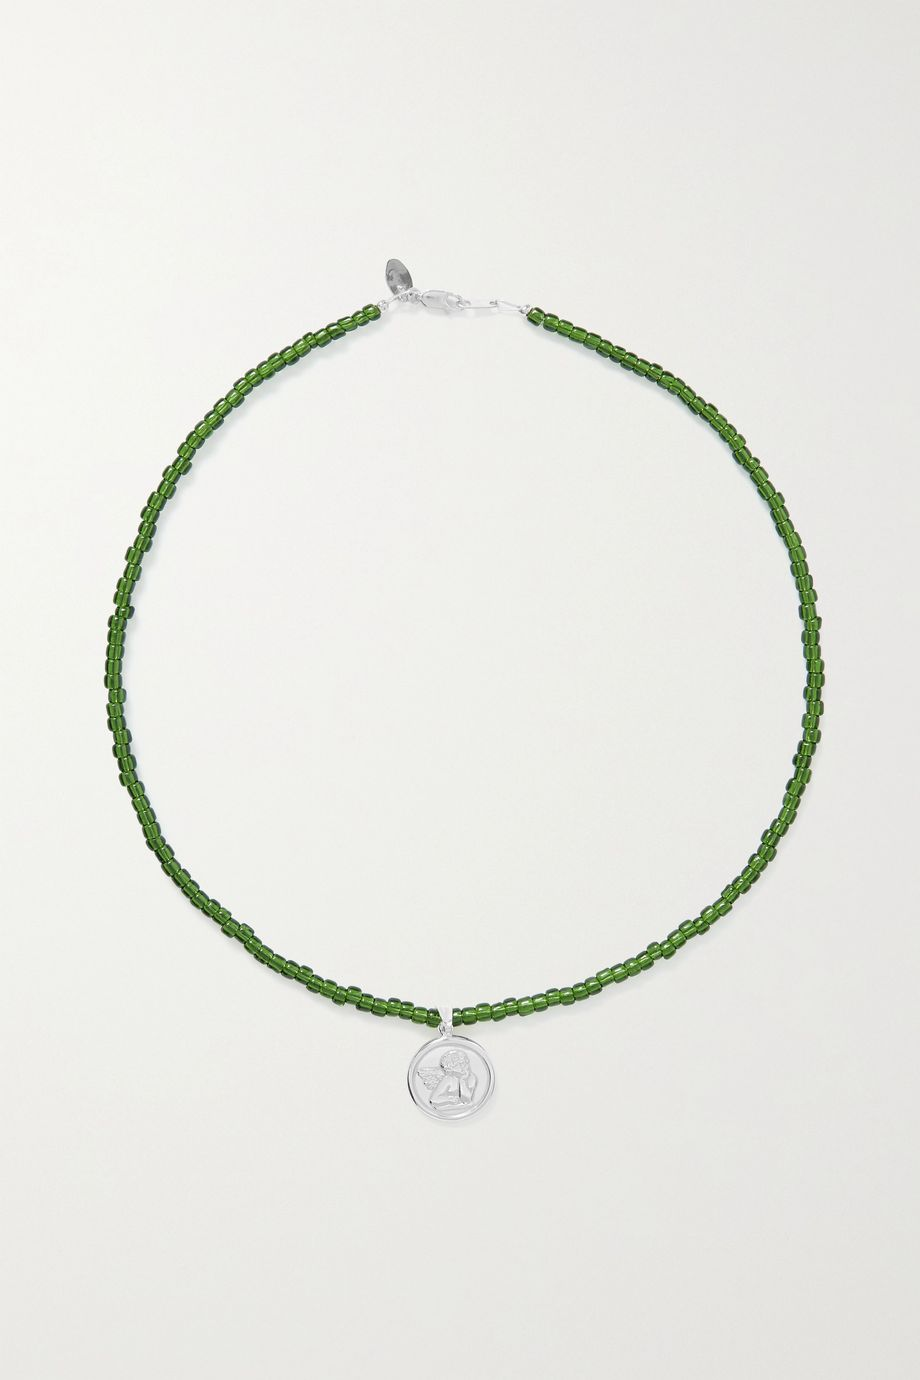 Santangelo Cazh silver and bead necklace